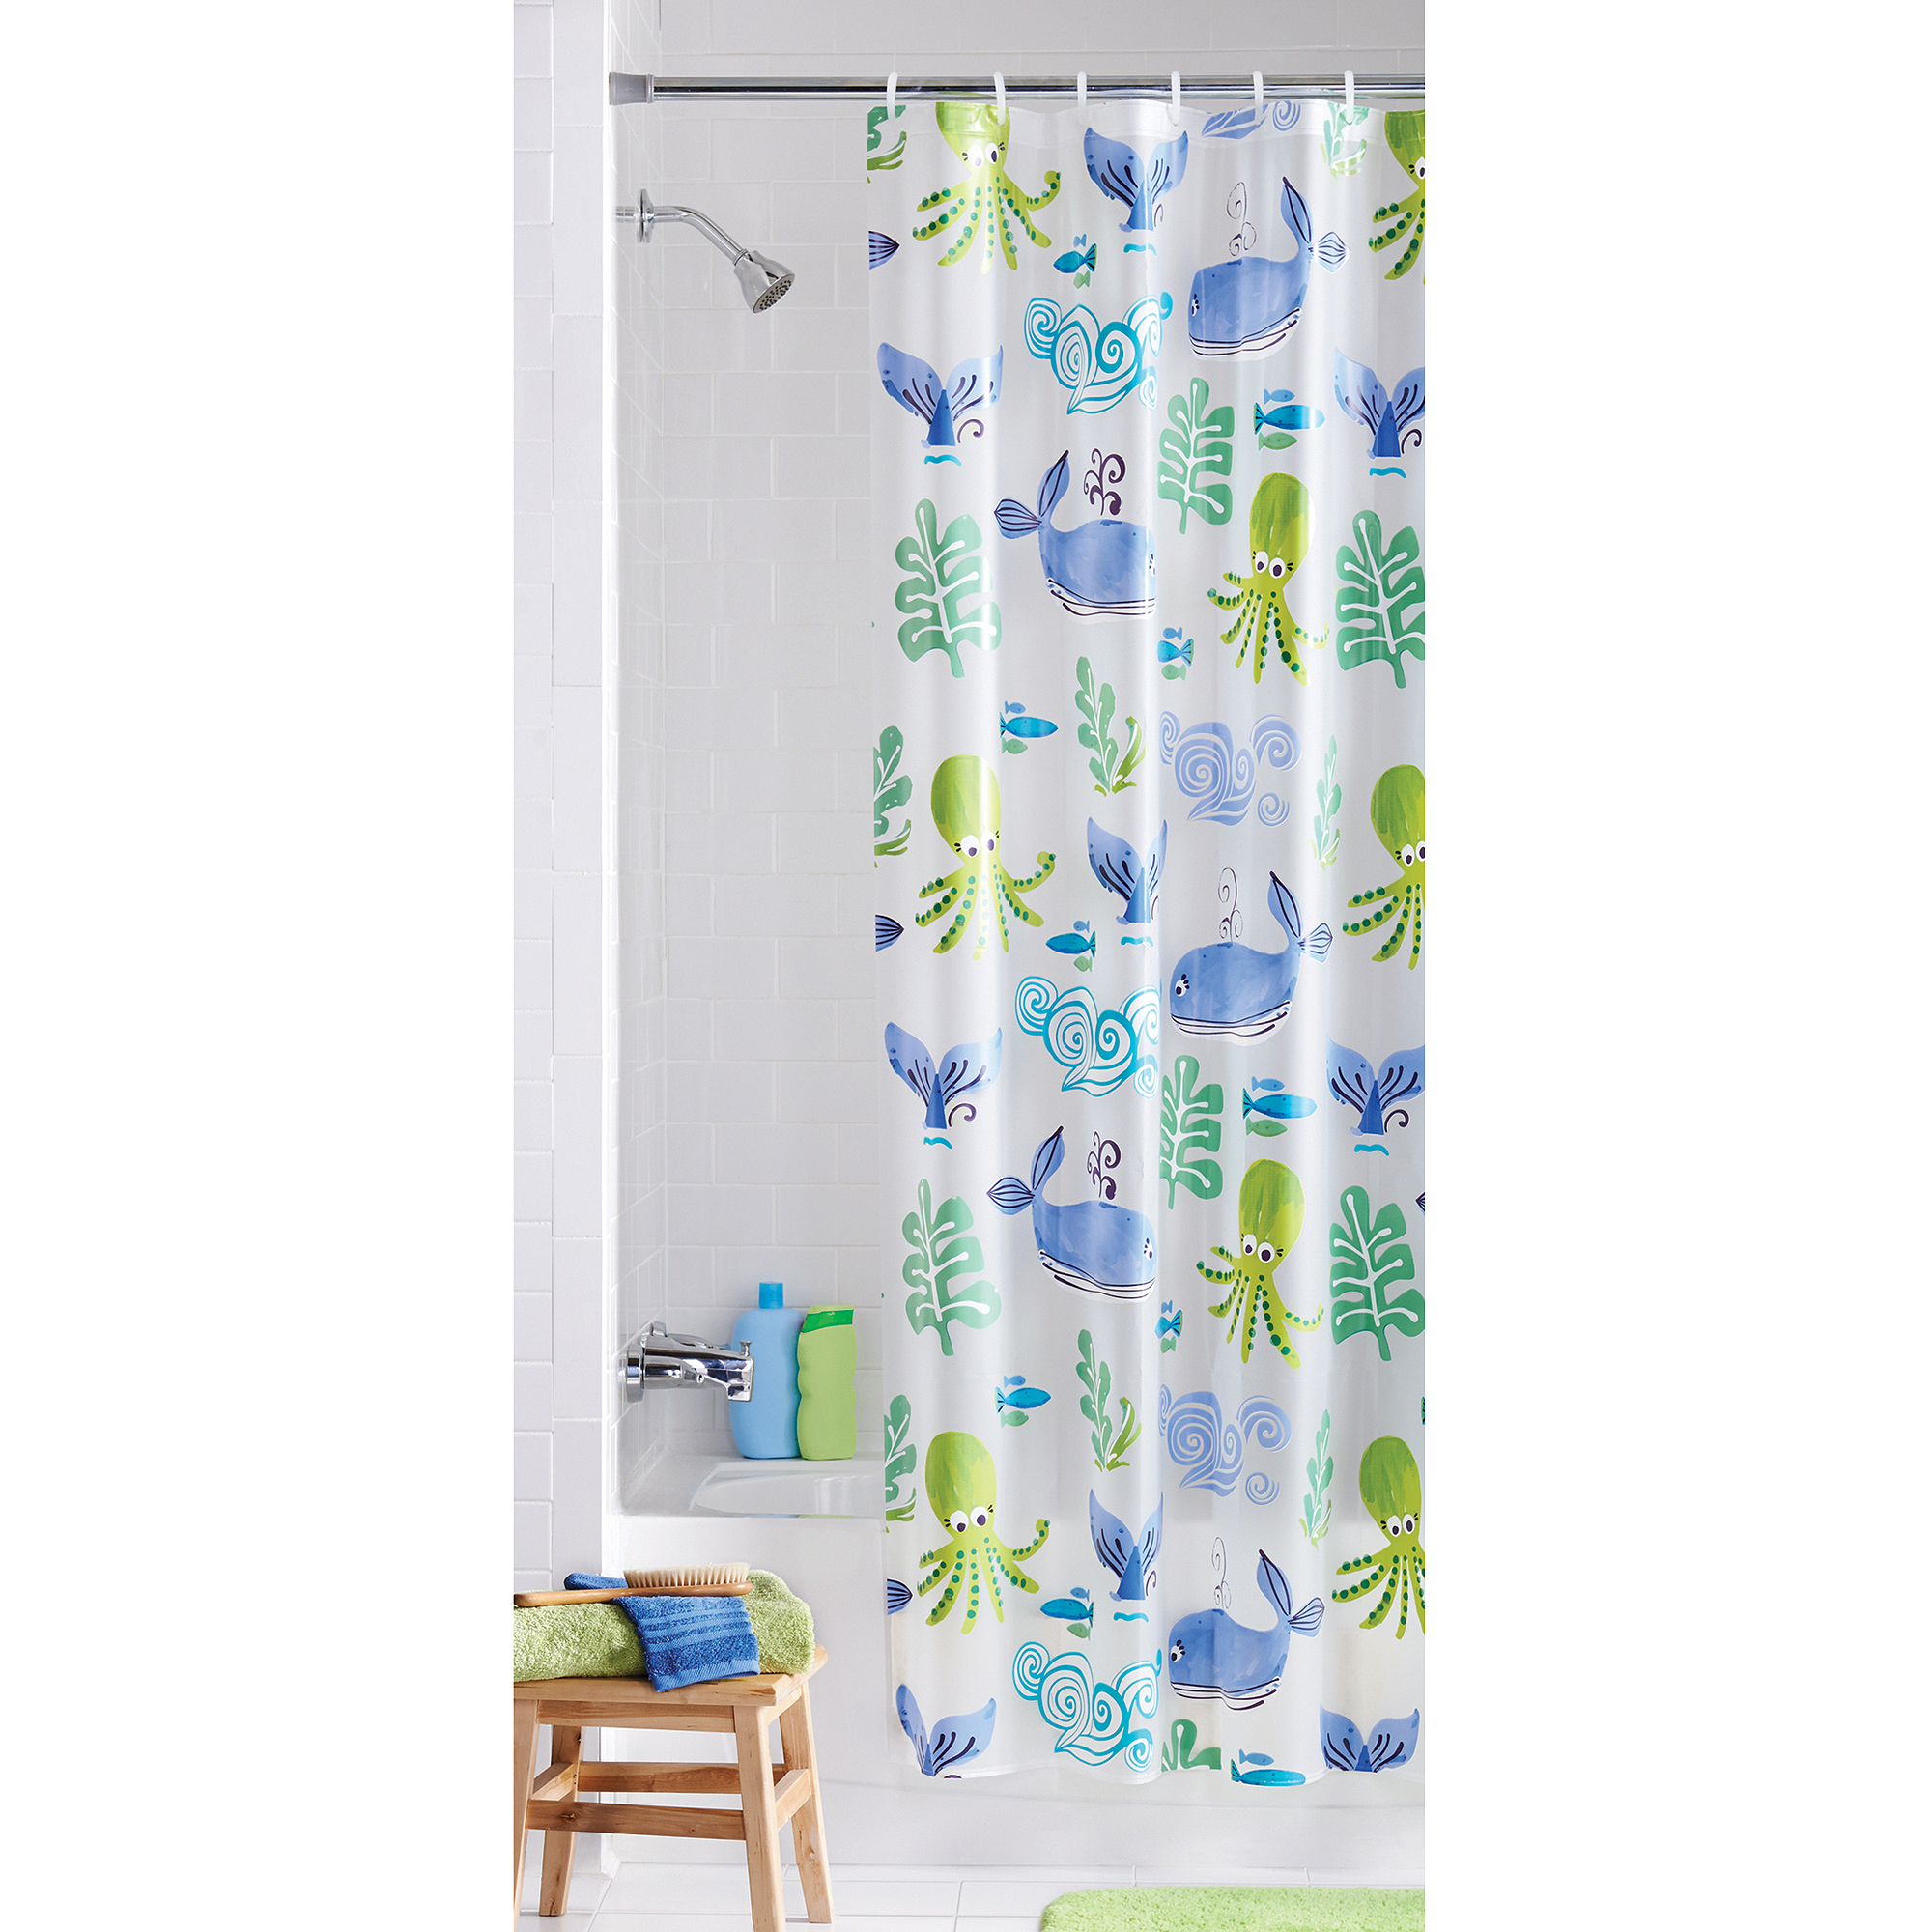 Mainstays Neptune PEVA Vinyl Shower Curtain